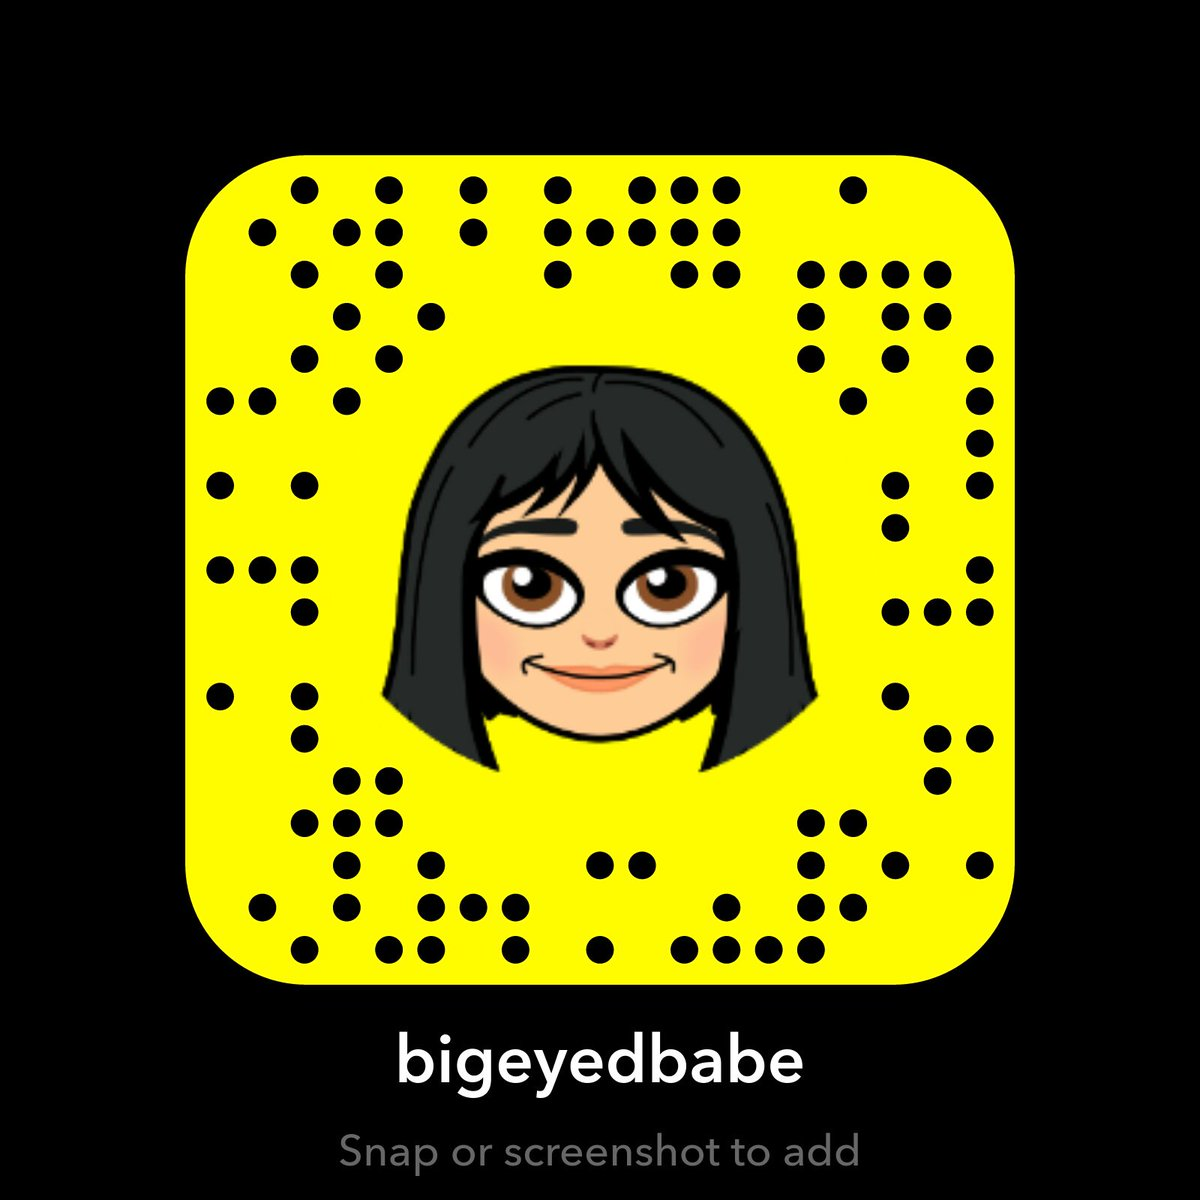 Nude snapcodes